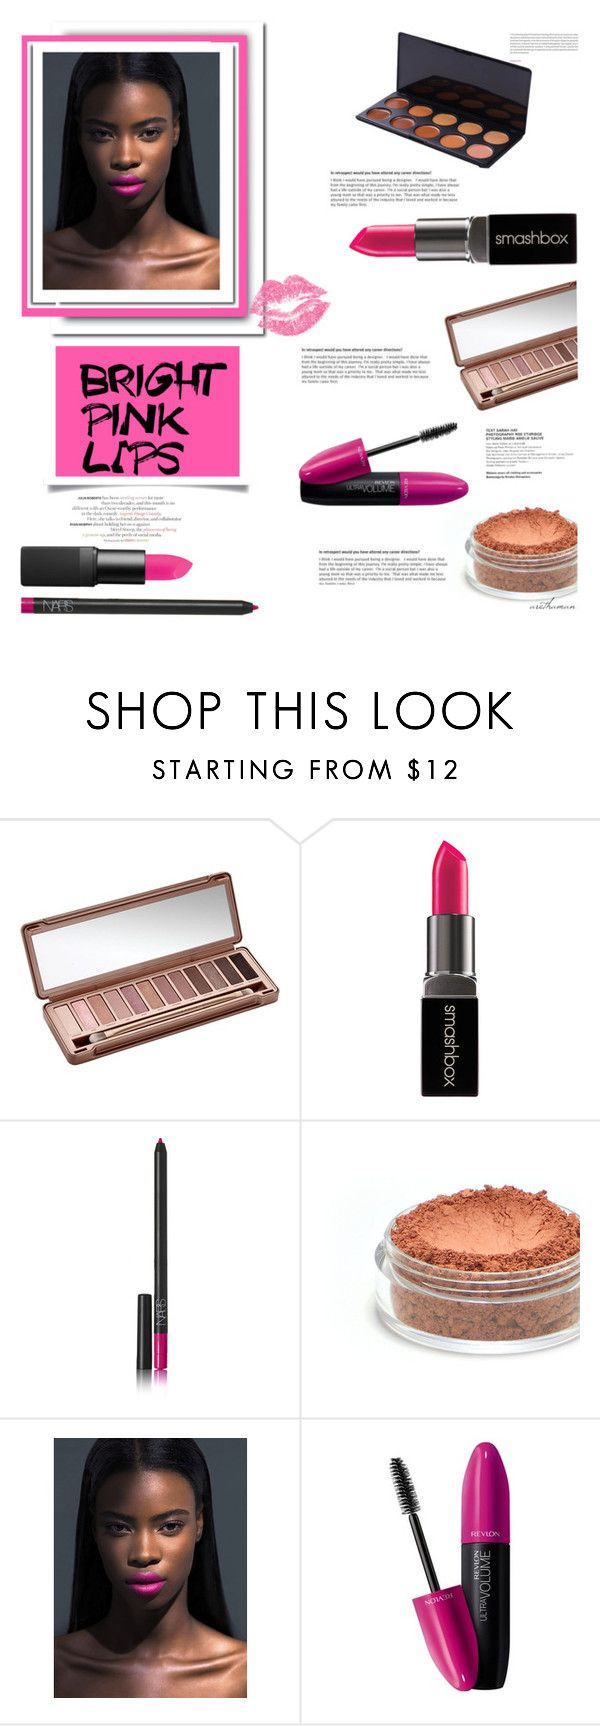 """""""Bright Pink Lips"""" by arethaman ❤ liked on Polyvore featuring beauty, Urban Decay, Smashbox, NARS Cosmetics, Oris, Revlon, pinklips, makeuplook, brightlips and spring2016"""